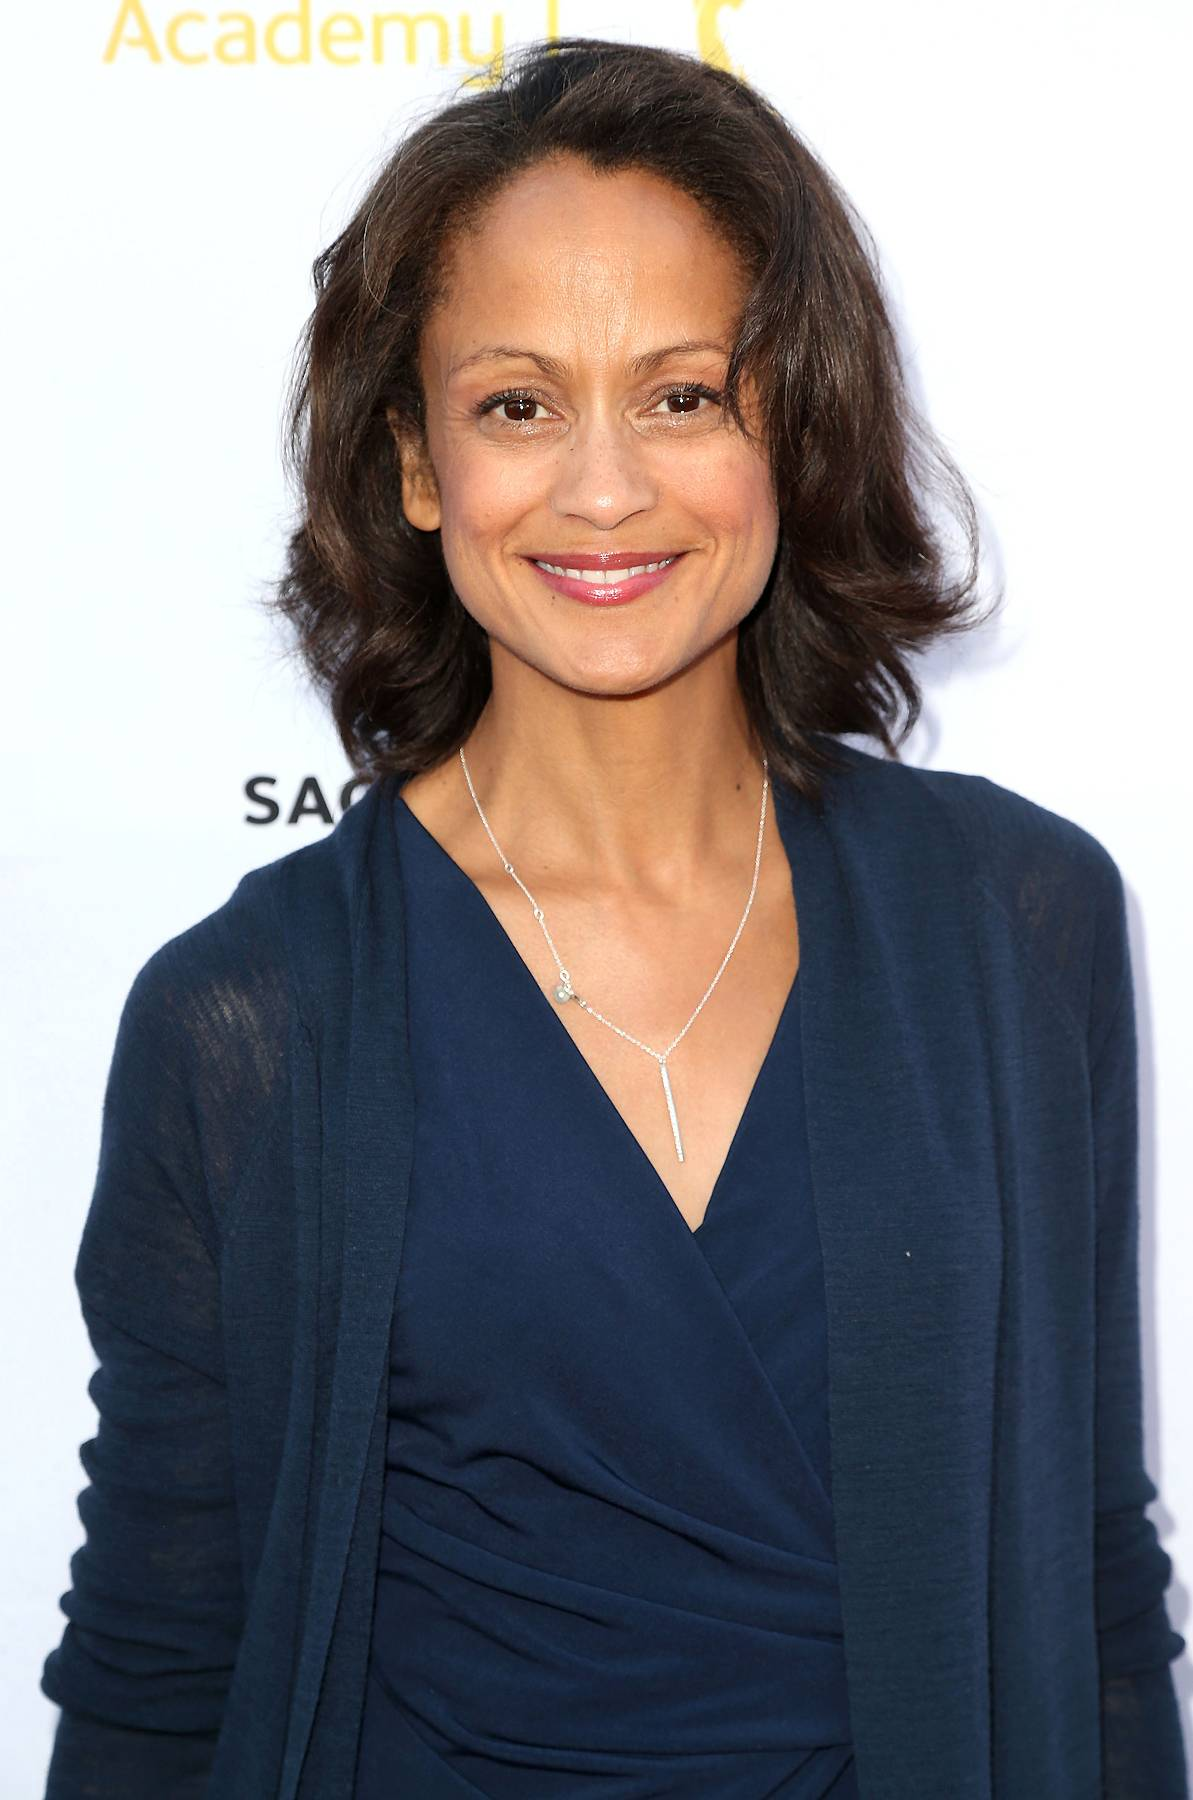 Anne-Marie Johnson - Girlfriends star Anne-Marie Johnson is no stranger to the limelight. From In Living Color to feature films, she has had a breadth of acting roles that fans just can?t get enough of. (Photo: Frederick M. Brown/Getty Images)